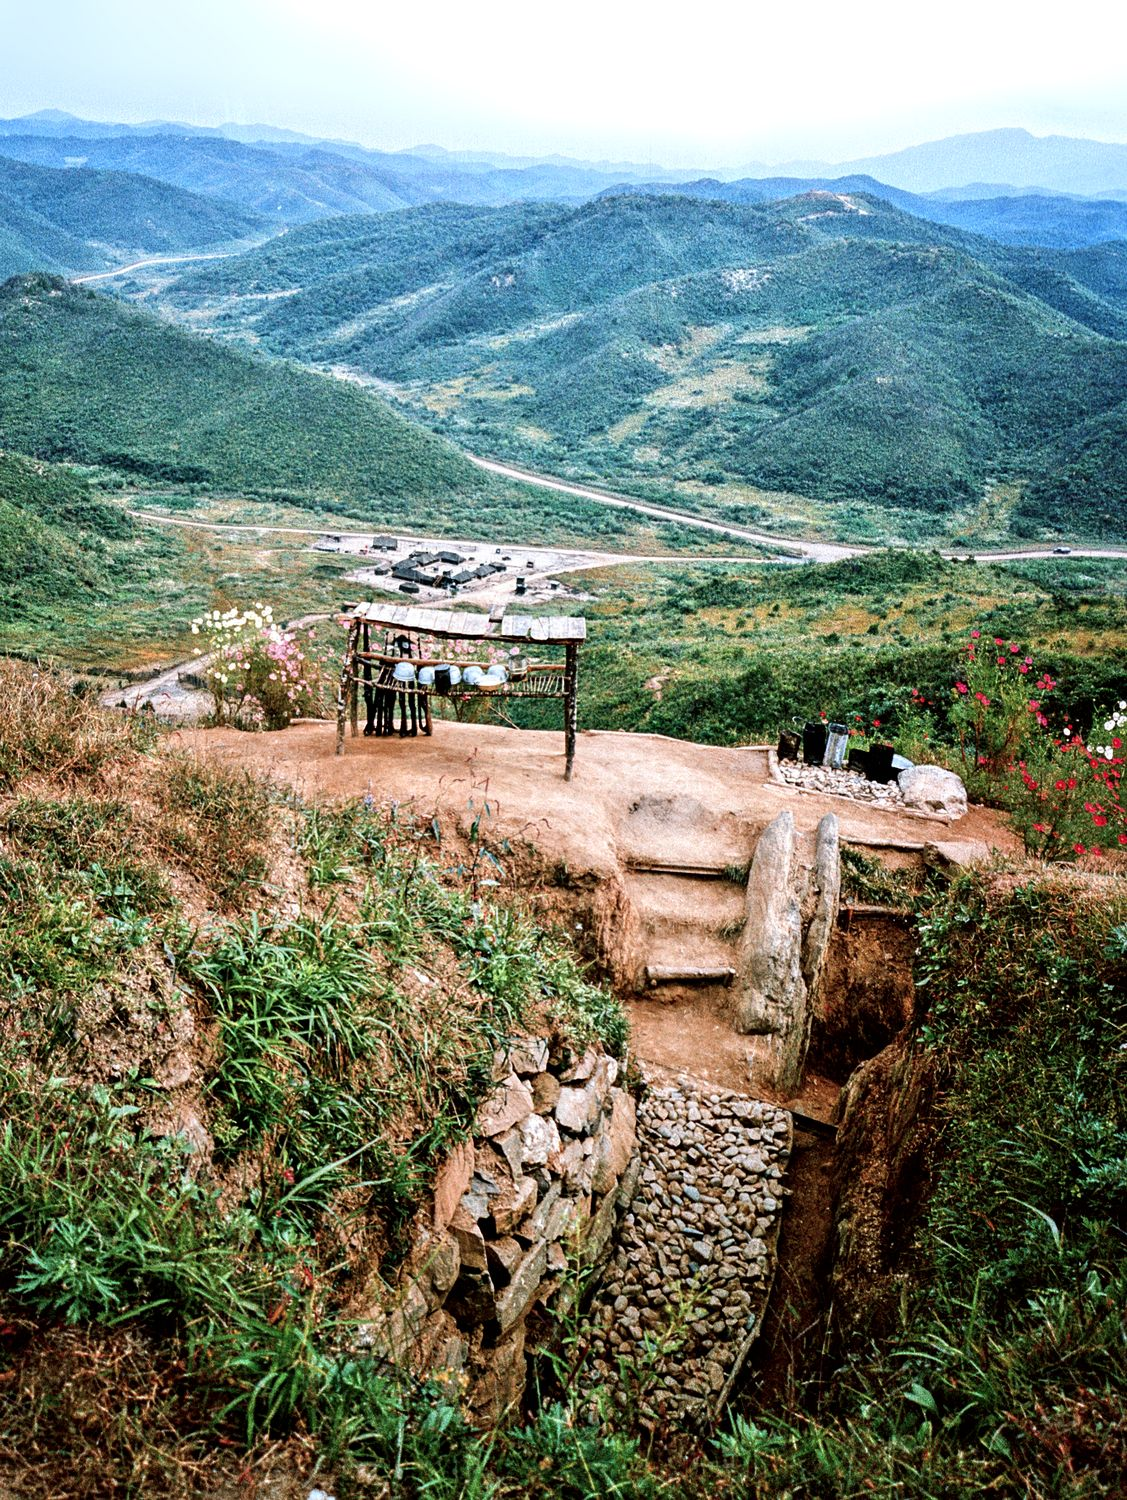 on the DMZ in Korea -- 1964 - entrance to a forward observation post - DMZ - Korea -1964 - Techno-Impressionist Museum - Techno-Impressionism - art - beautiful - photo photography picture - by Tony Karp